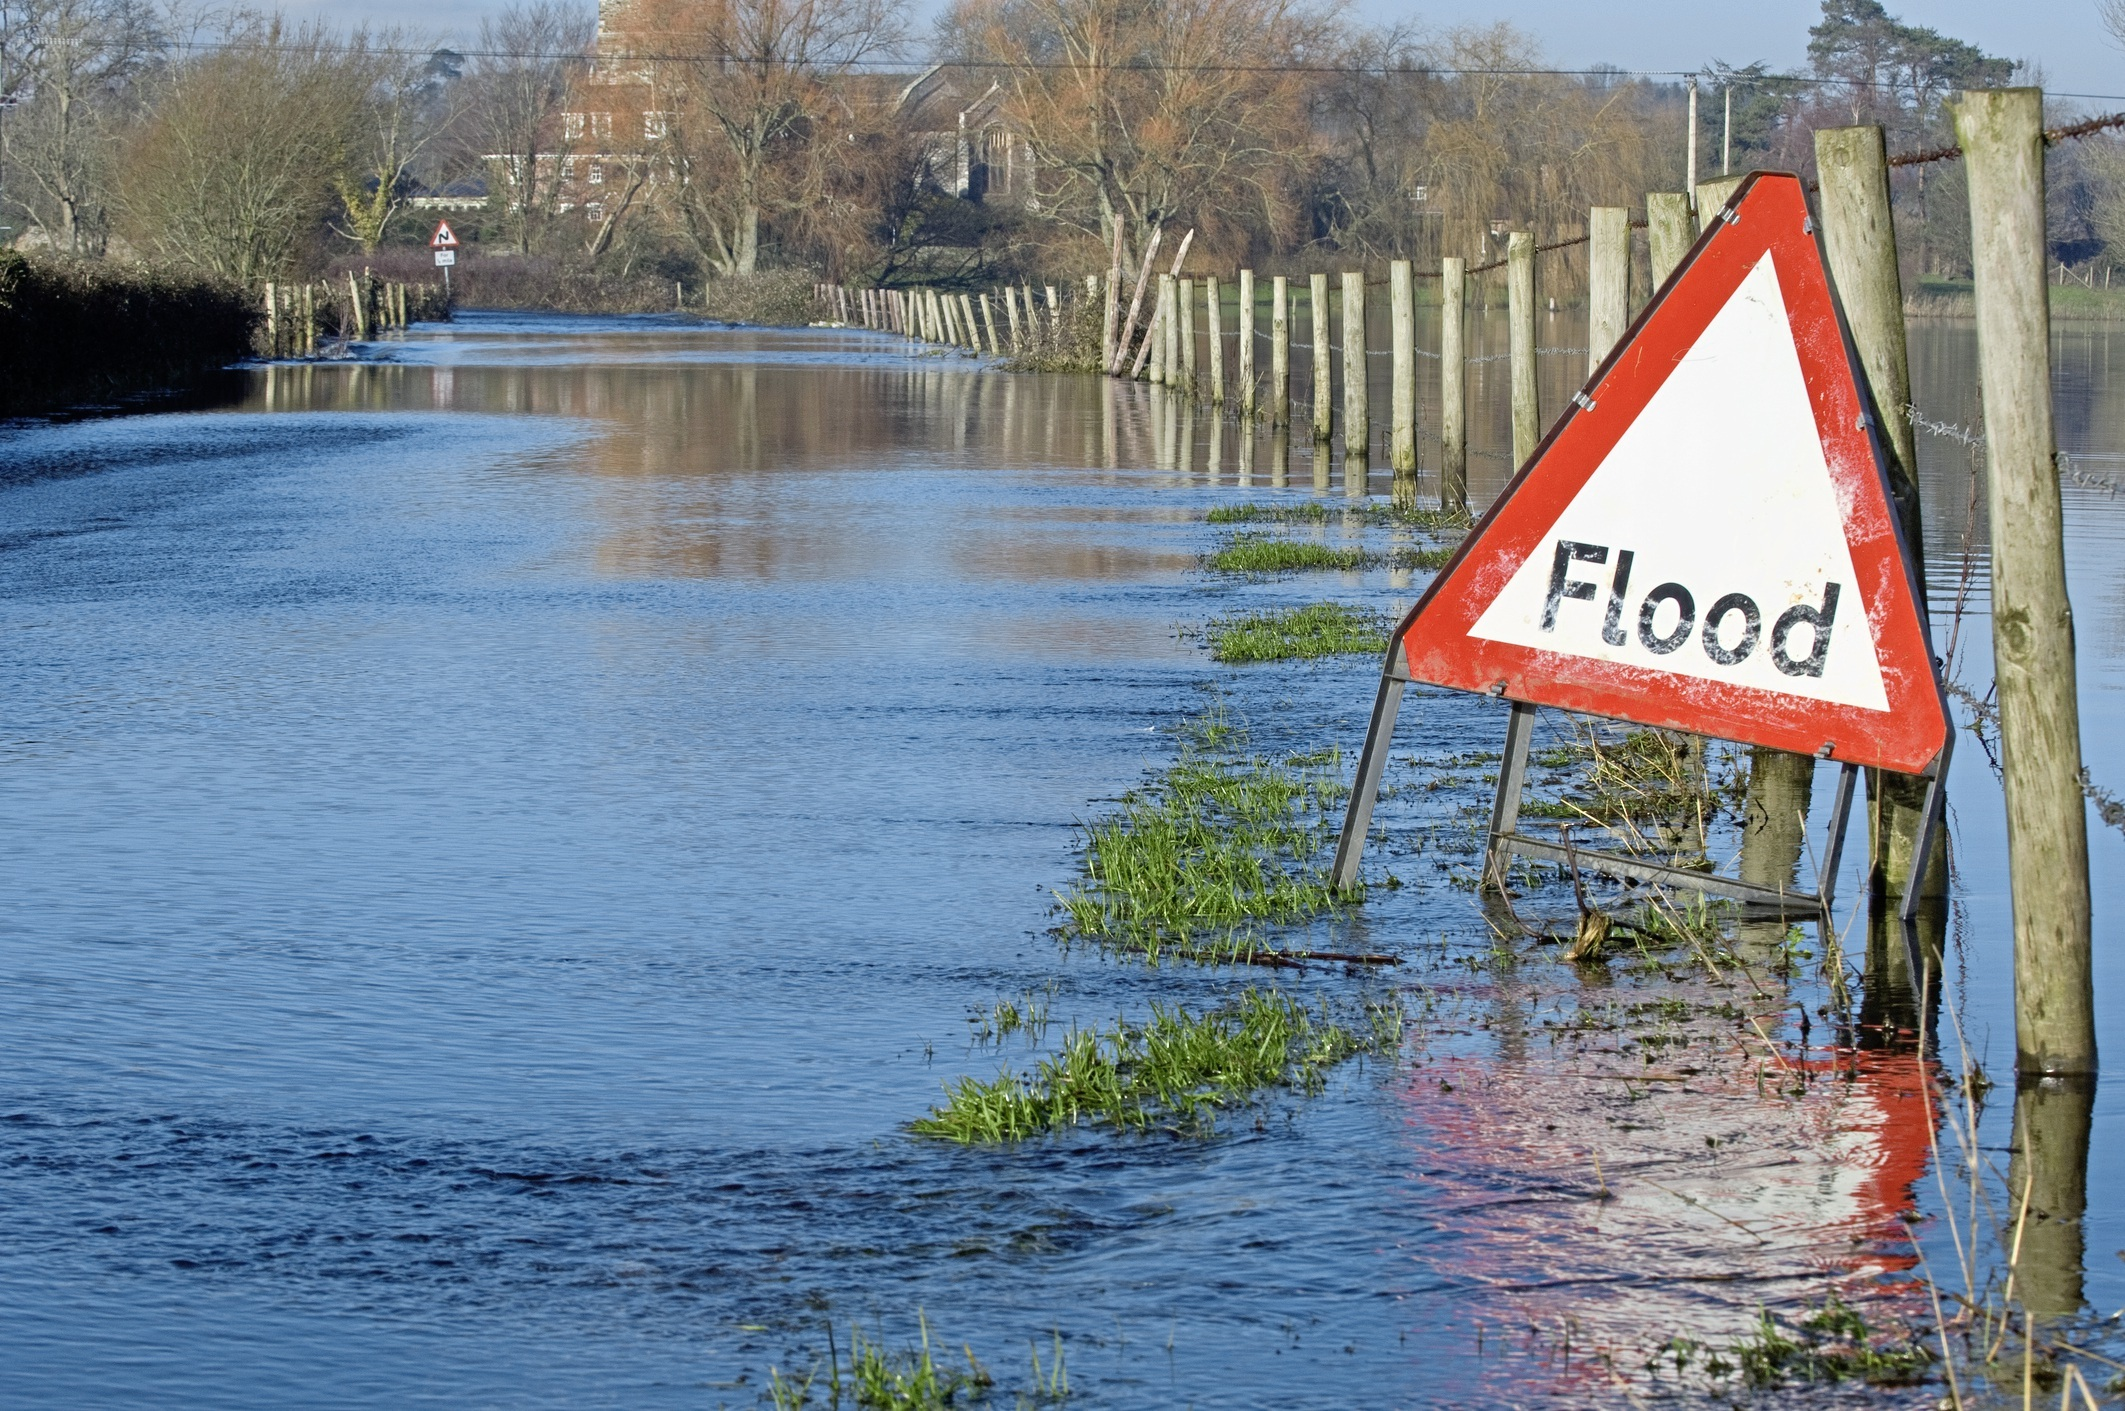 A flood warning sign, on a closed country road next to water logged fields in the Avon Valley, Hampshire, England. Flooded after an extreme amount of rainfall at the start of 2014.